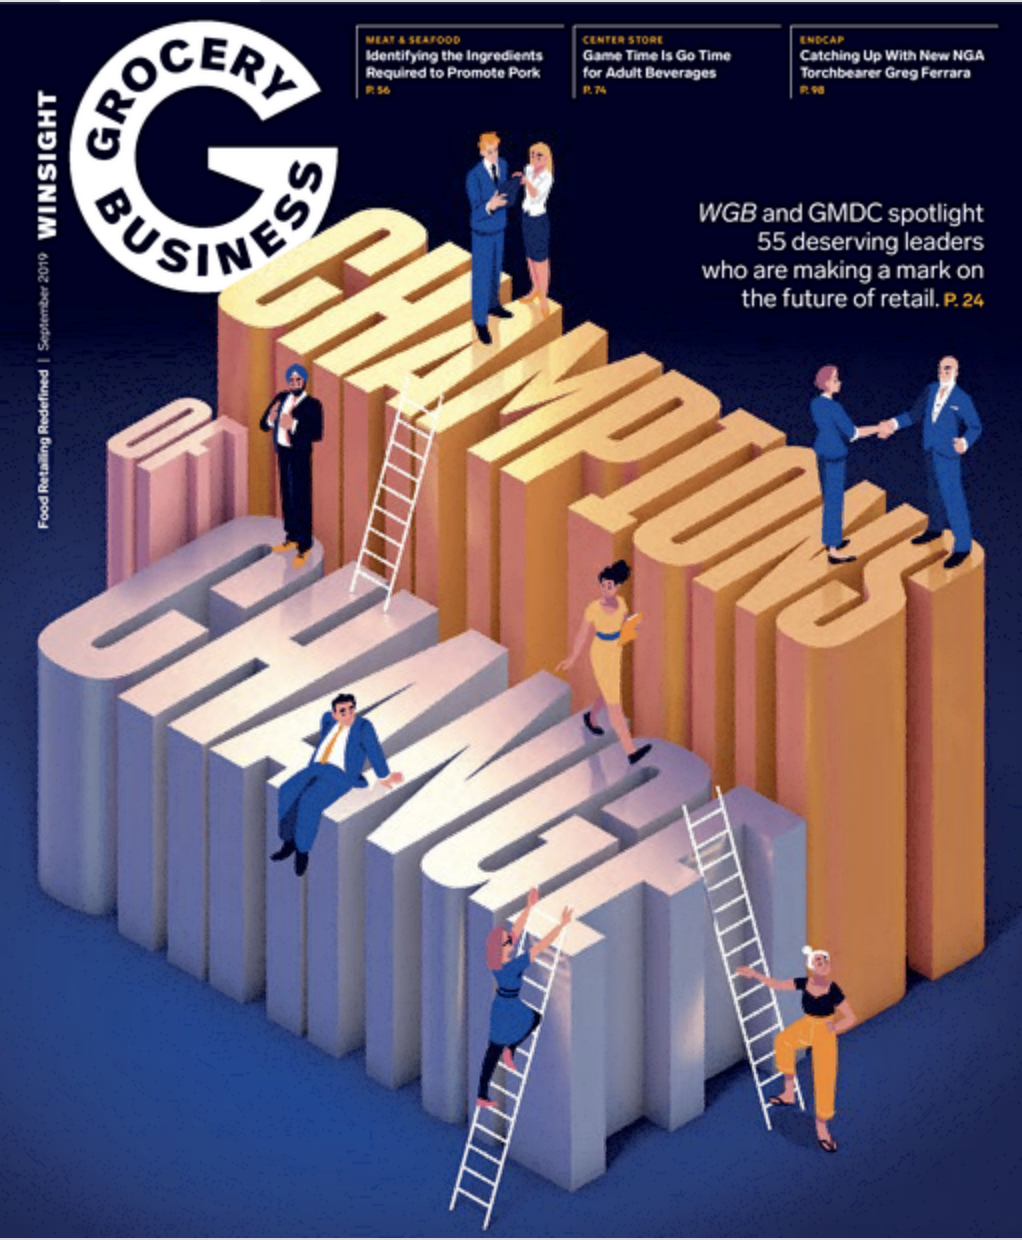 Winsight Grocery Business Magazine September 2019 Issue